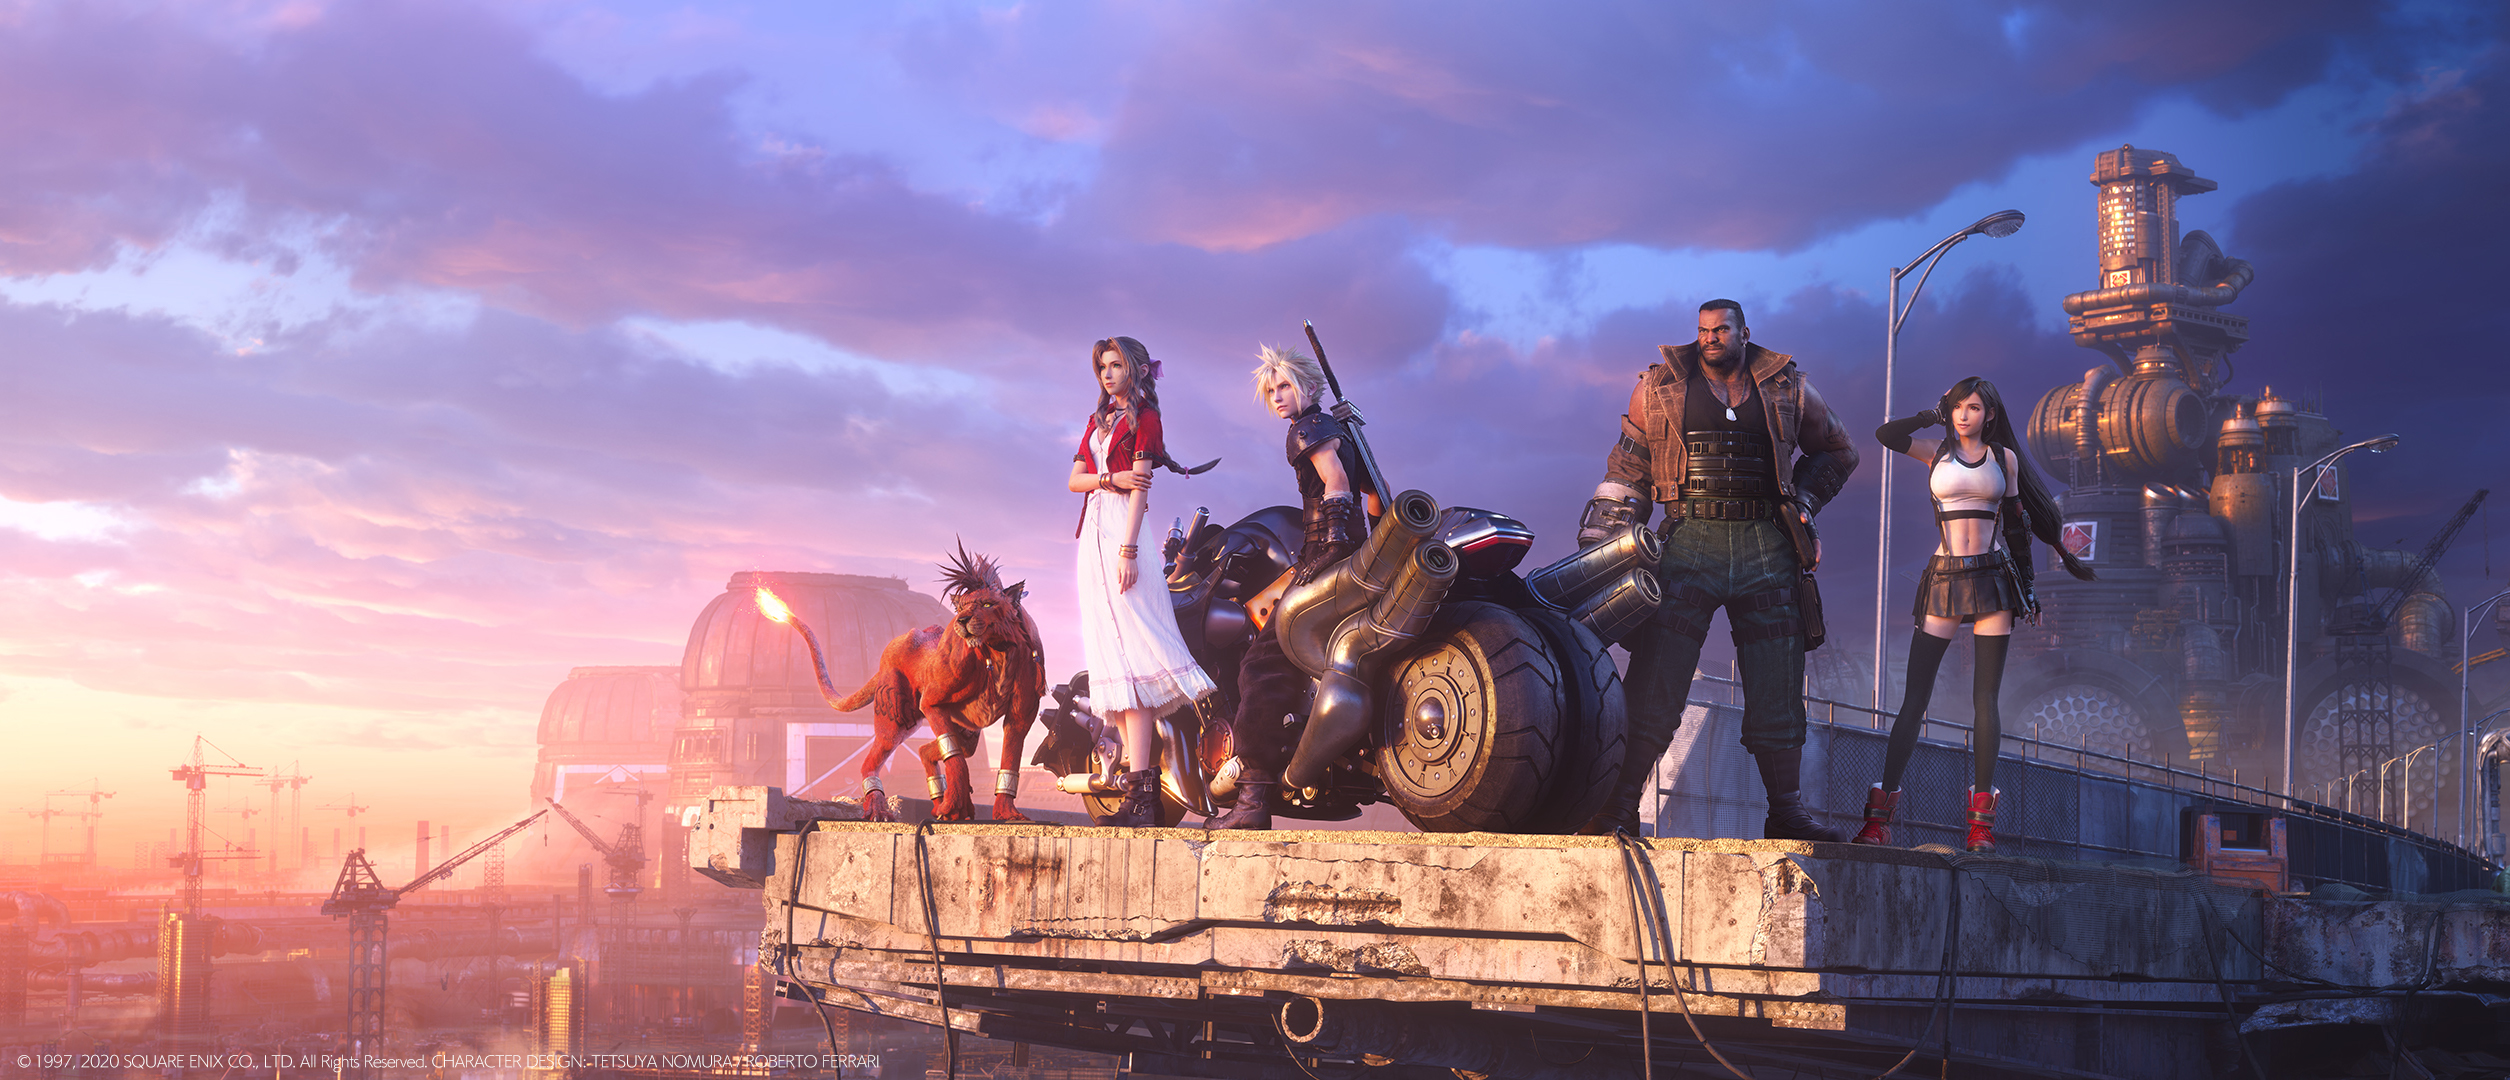 Square Enix confirma Final Fantasy VII Remake y Outriders para la PAX East 2020